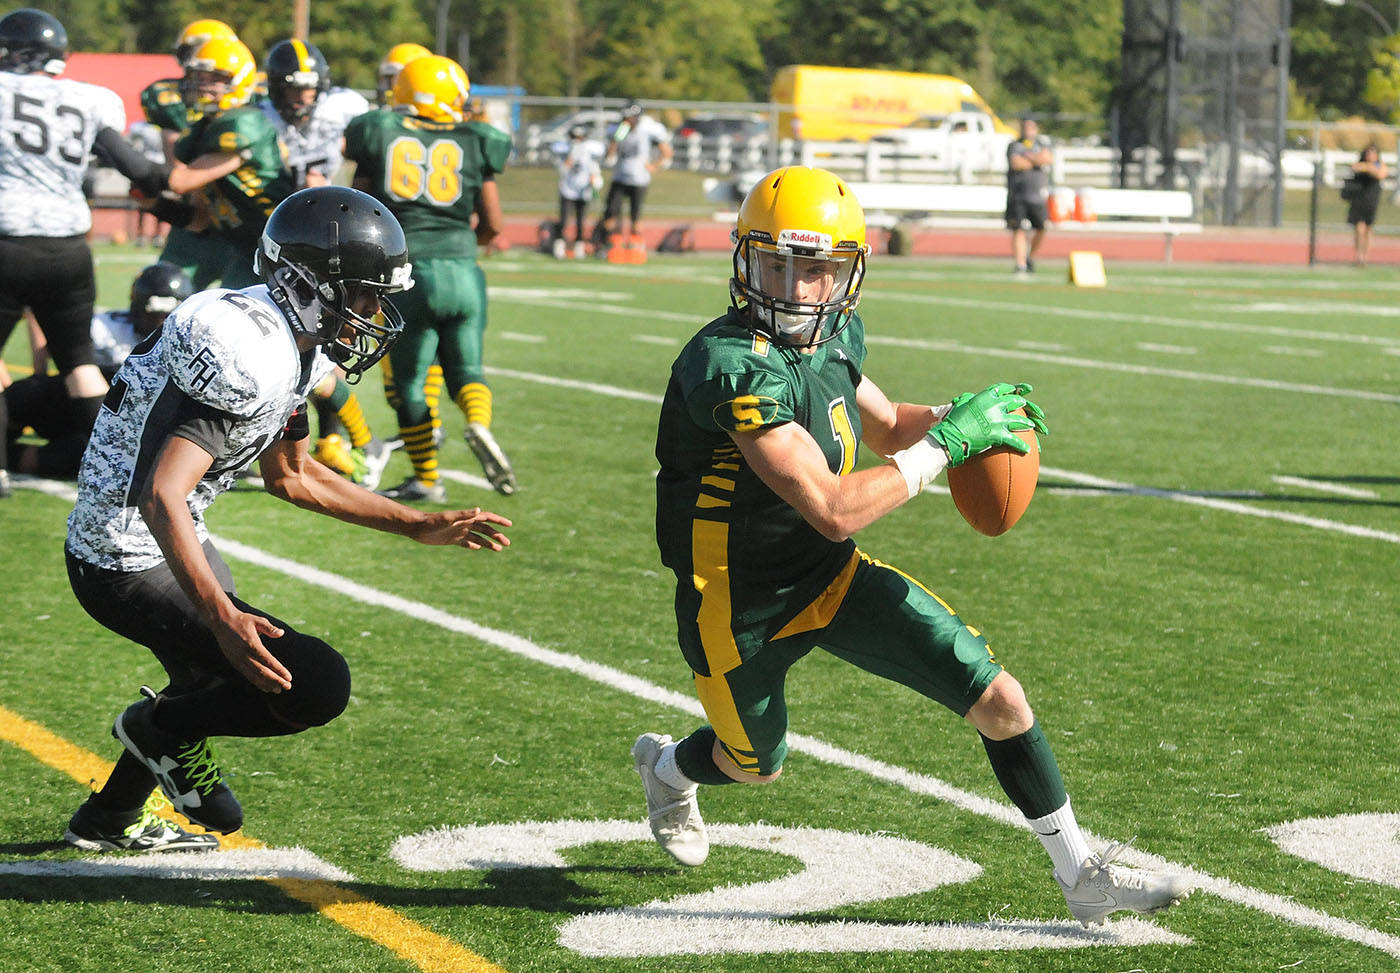 Langley Saints ball carrier Landon McArthur looked to turn the corner while being pursued by a Frank Hurt Hornets tackler in high school AA varsity football action Friday afternoon at McLeod Stadium. The Saints defeated the Hornets 44-7 in the exhibition match-up. Troy Landreville Langley Times